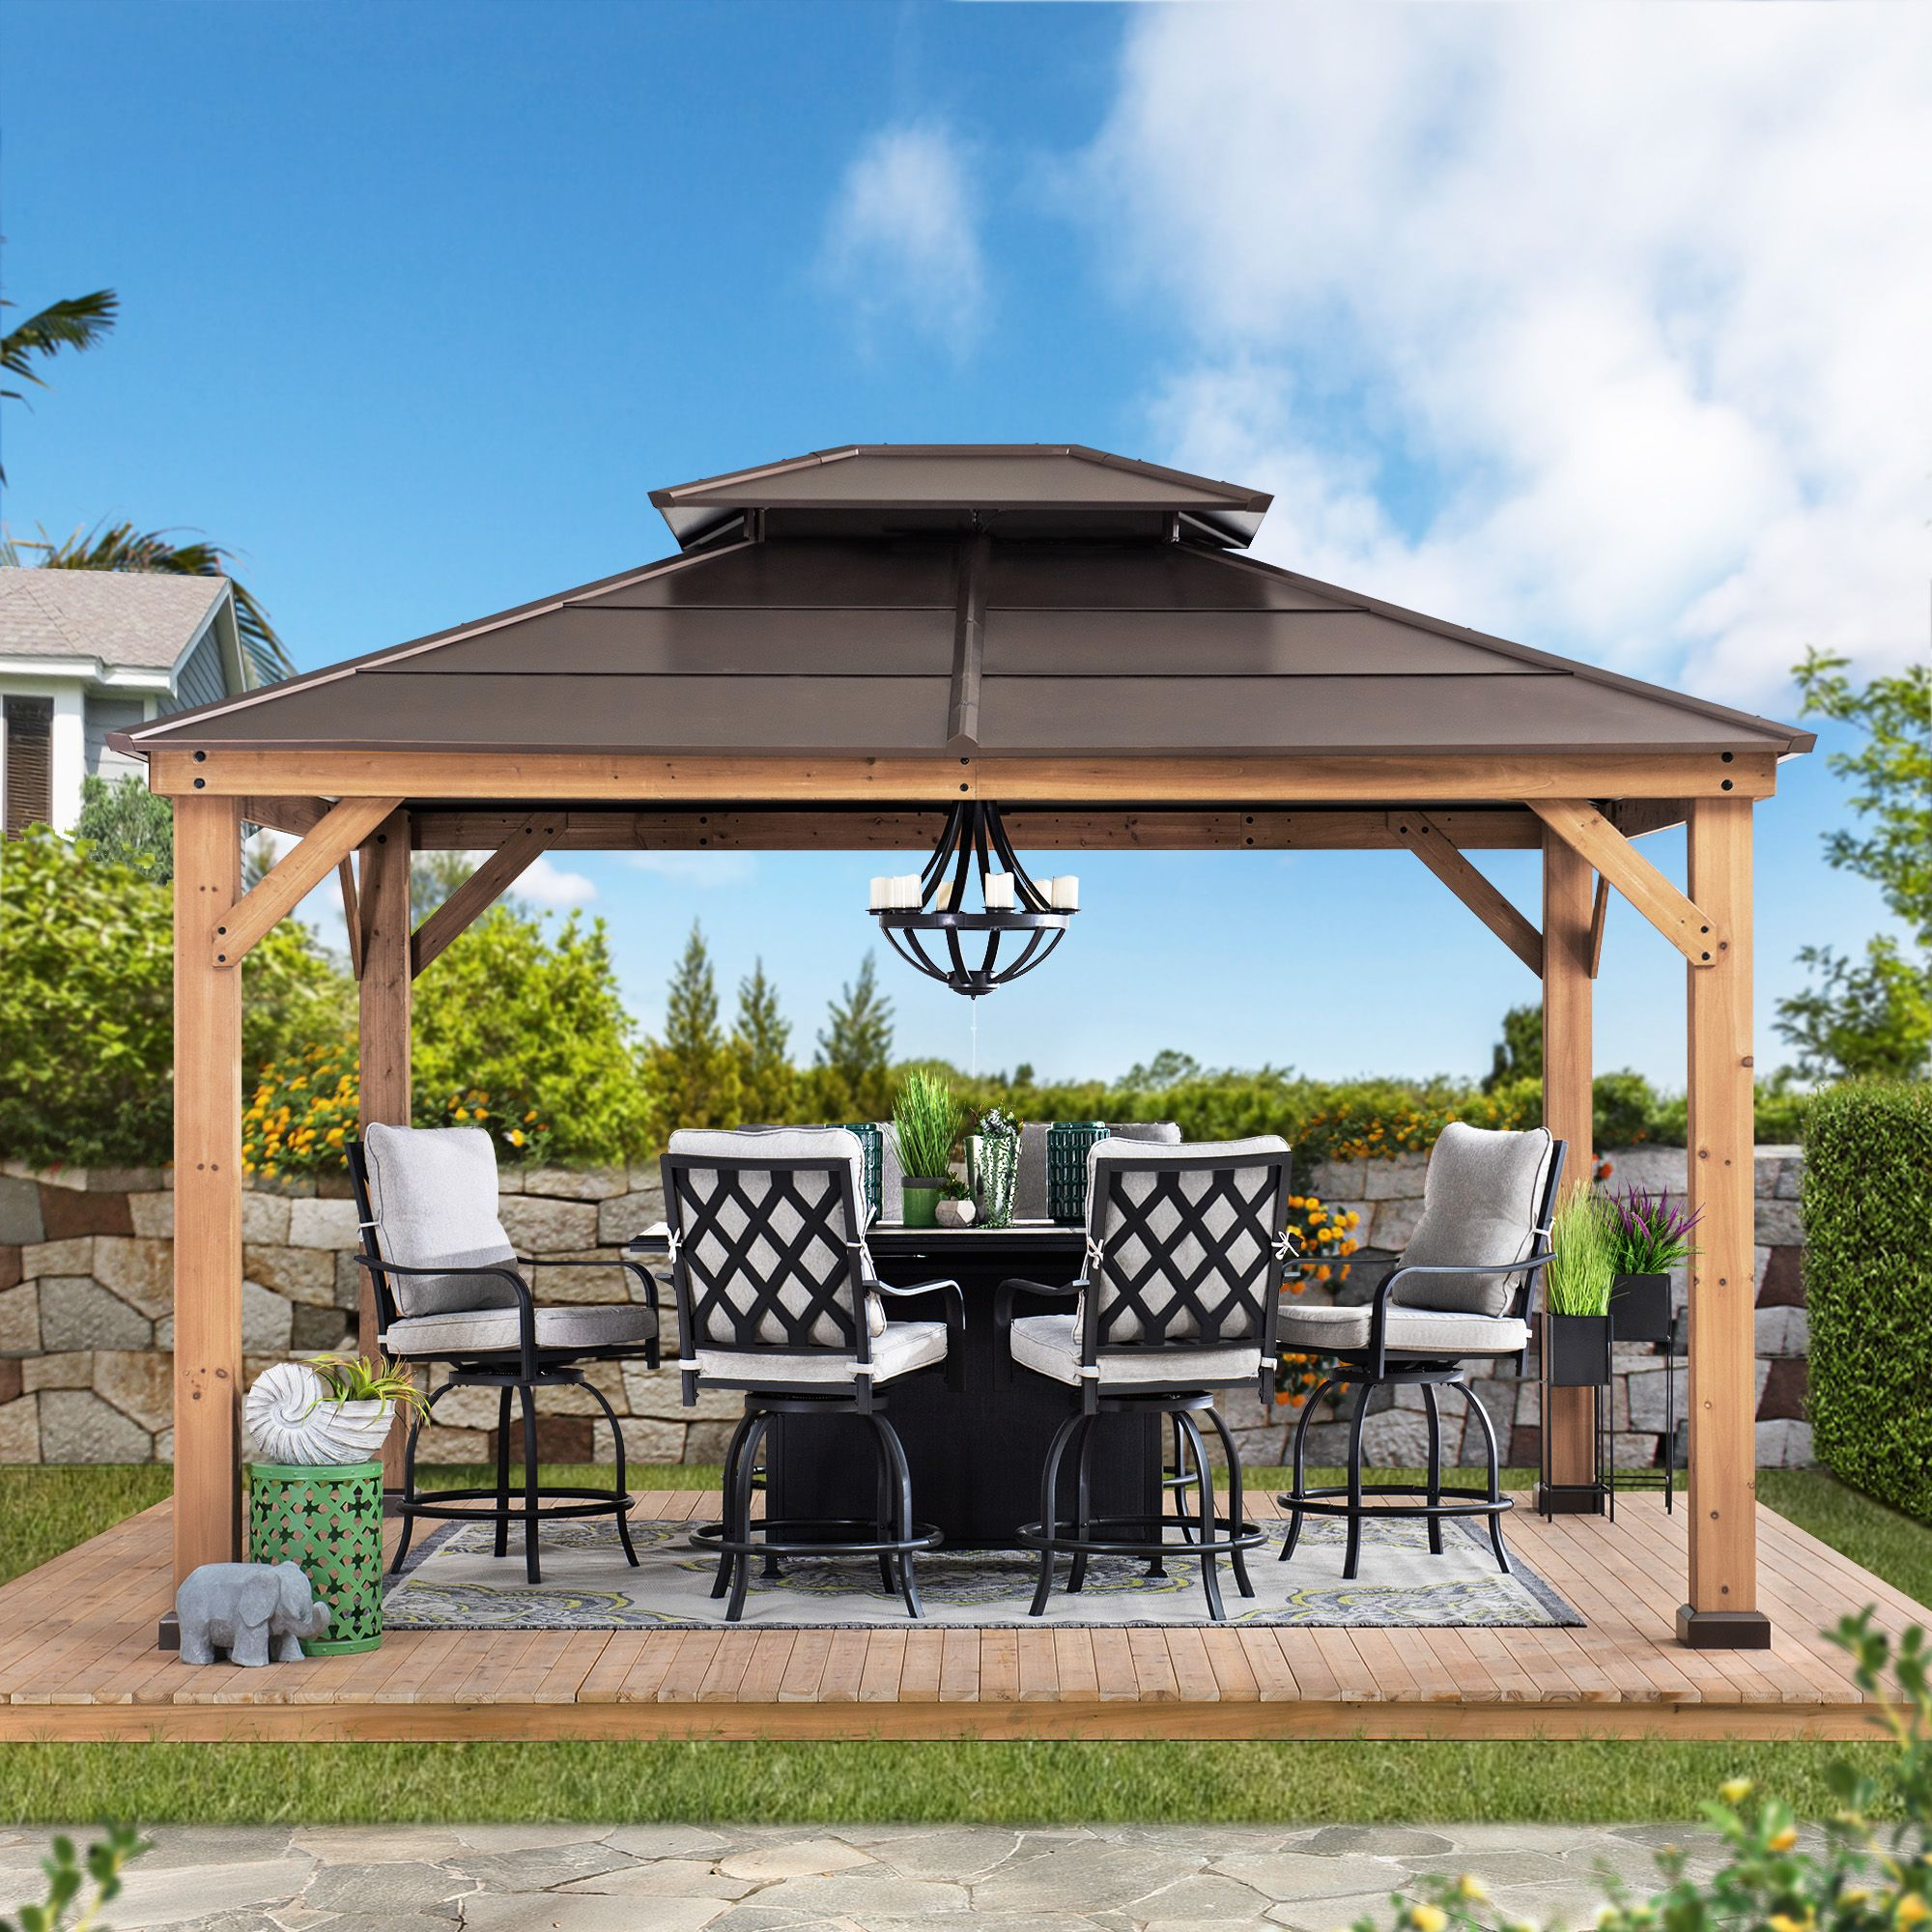 Sunjoy Missouri Collection 10 Ft X 12 Ft Cedar Framed Gazebo With Brown Steel 2 Tier Hip Roof Hardtop Walmart Com In 2020 Backyard Gazebo Gazebo Gazebo Roof